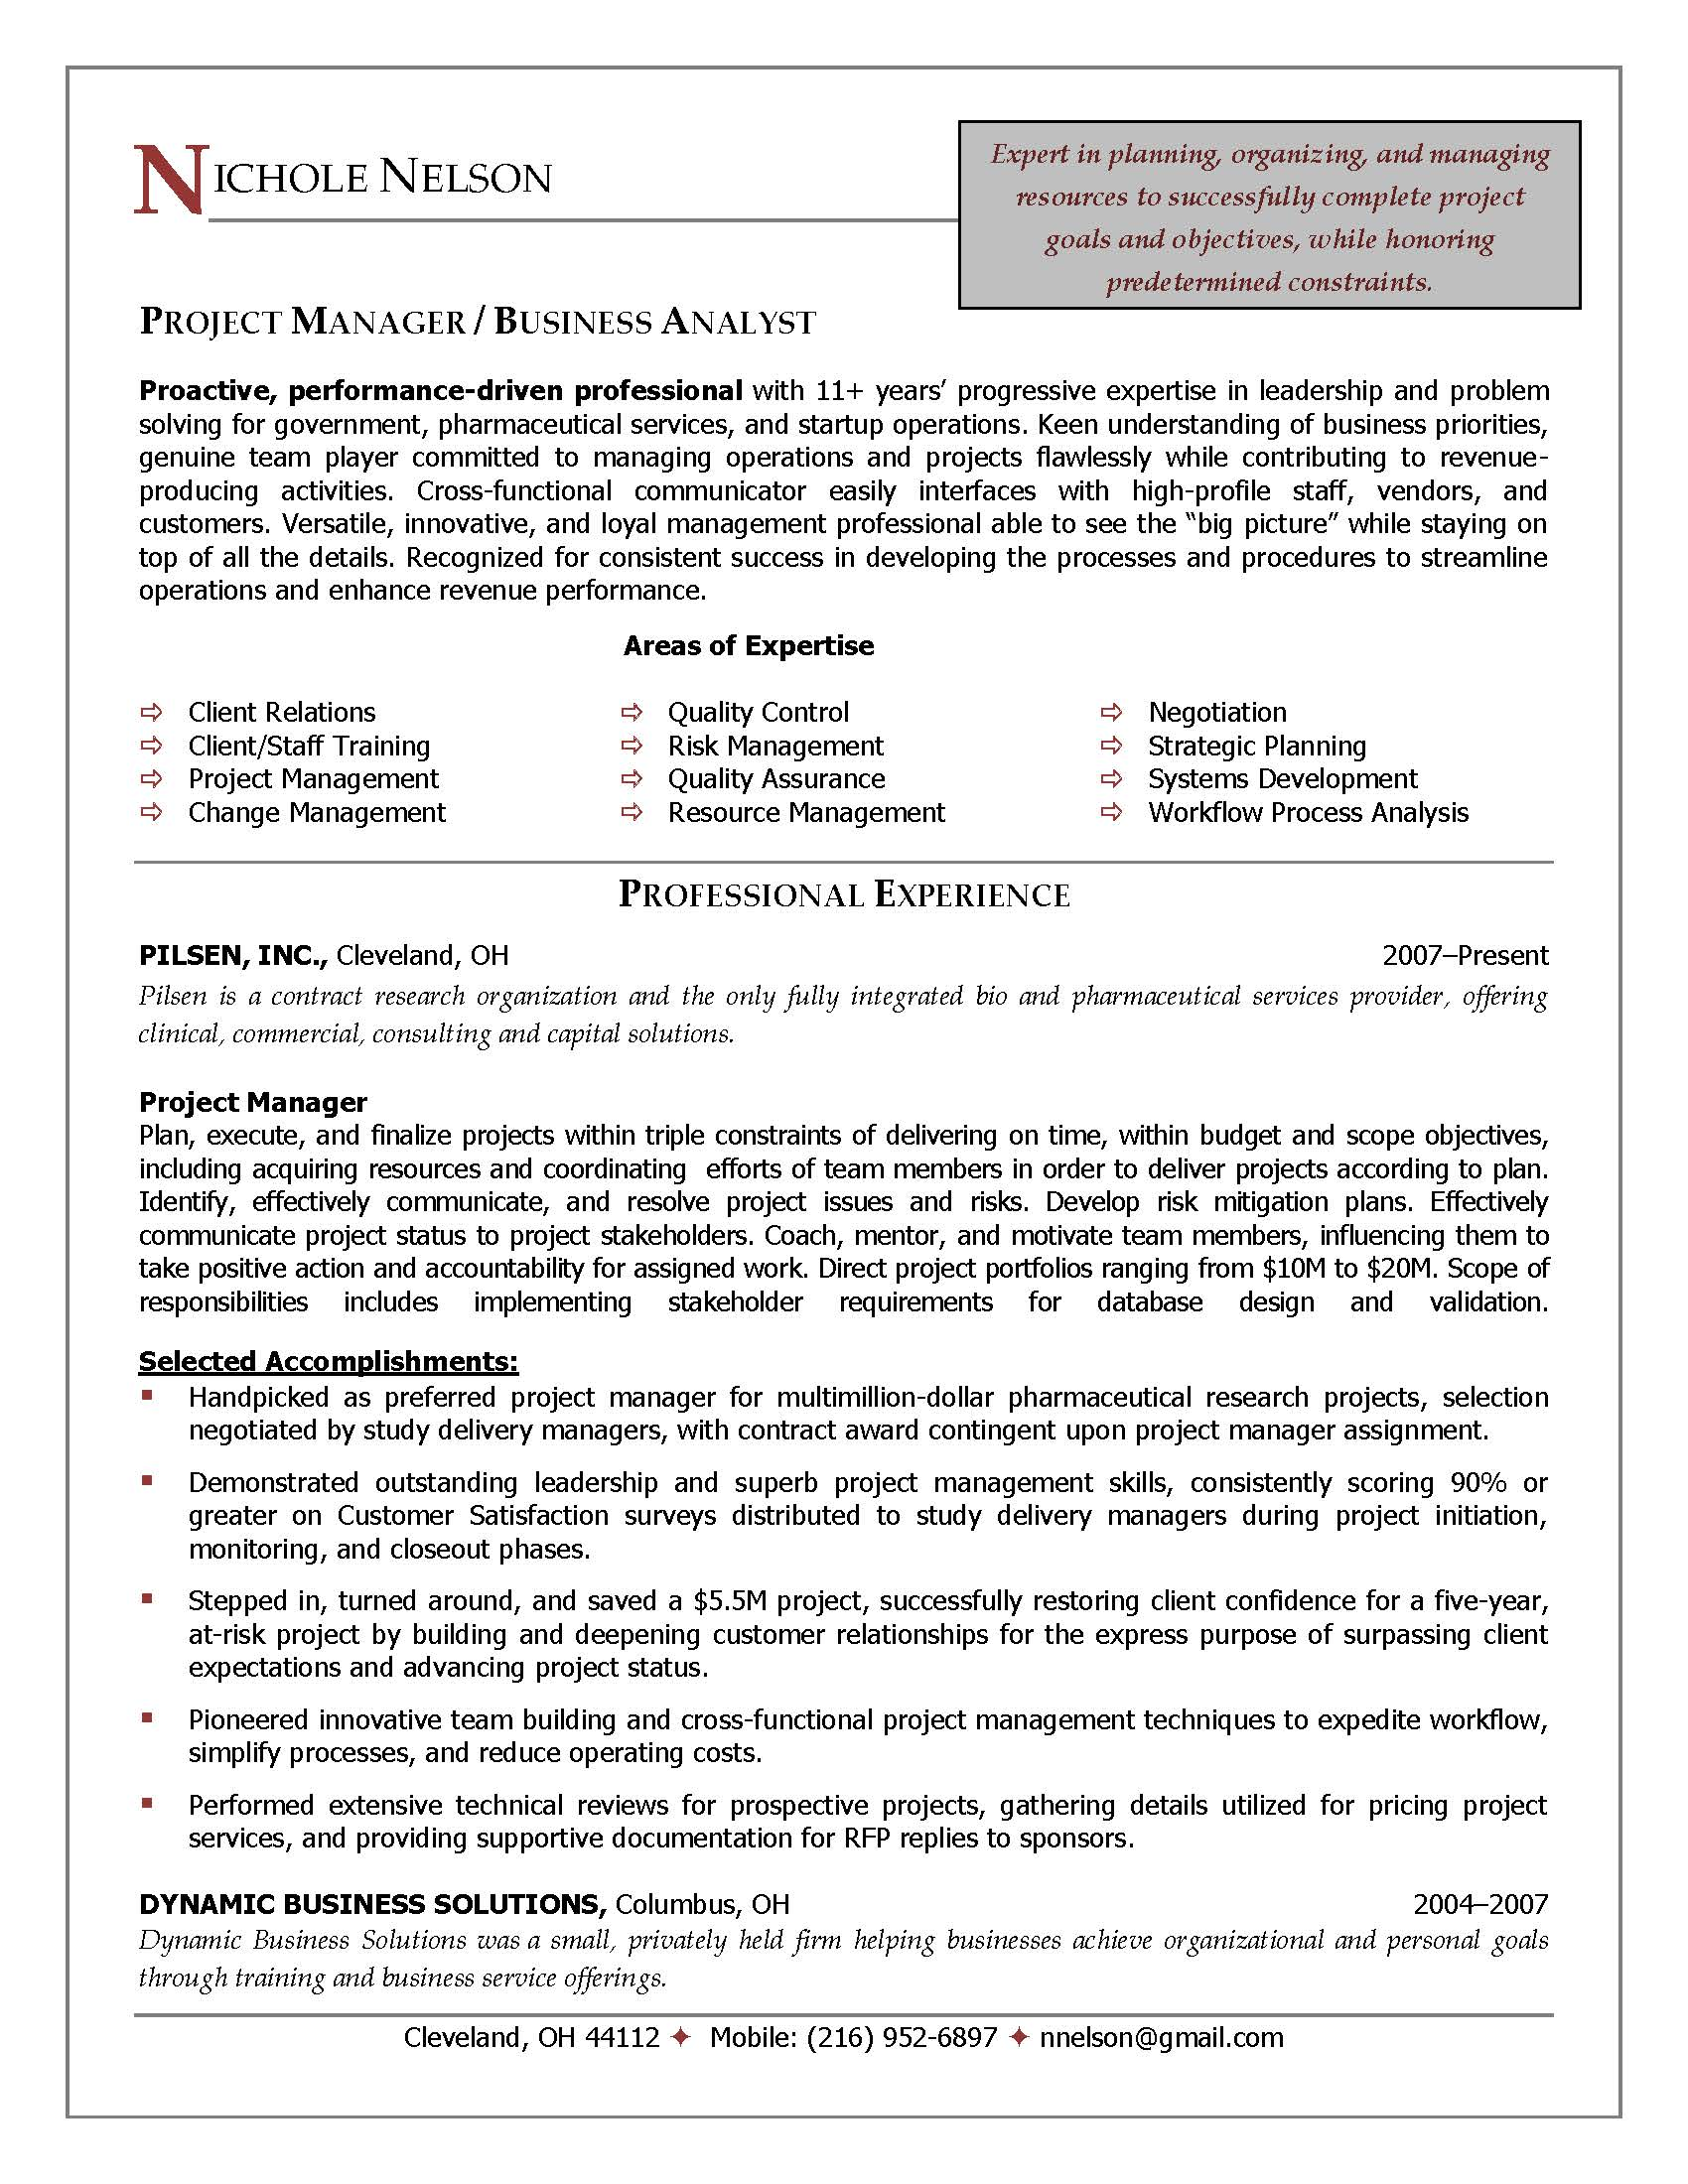 resume writing program resume and cover letter examples resume writing program 44 resume writing tips daily writing tips manager resume sample provided by